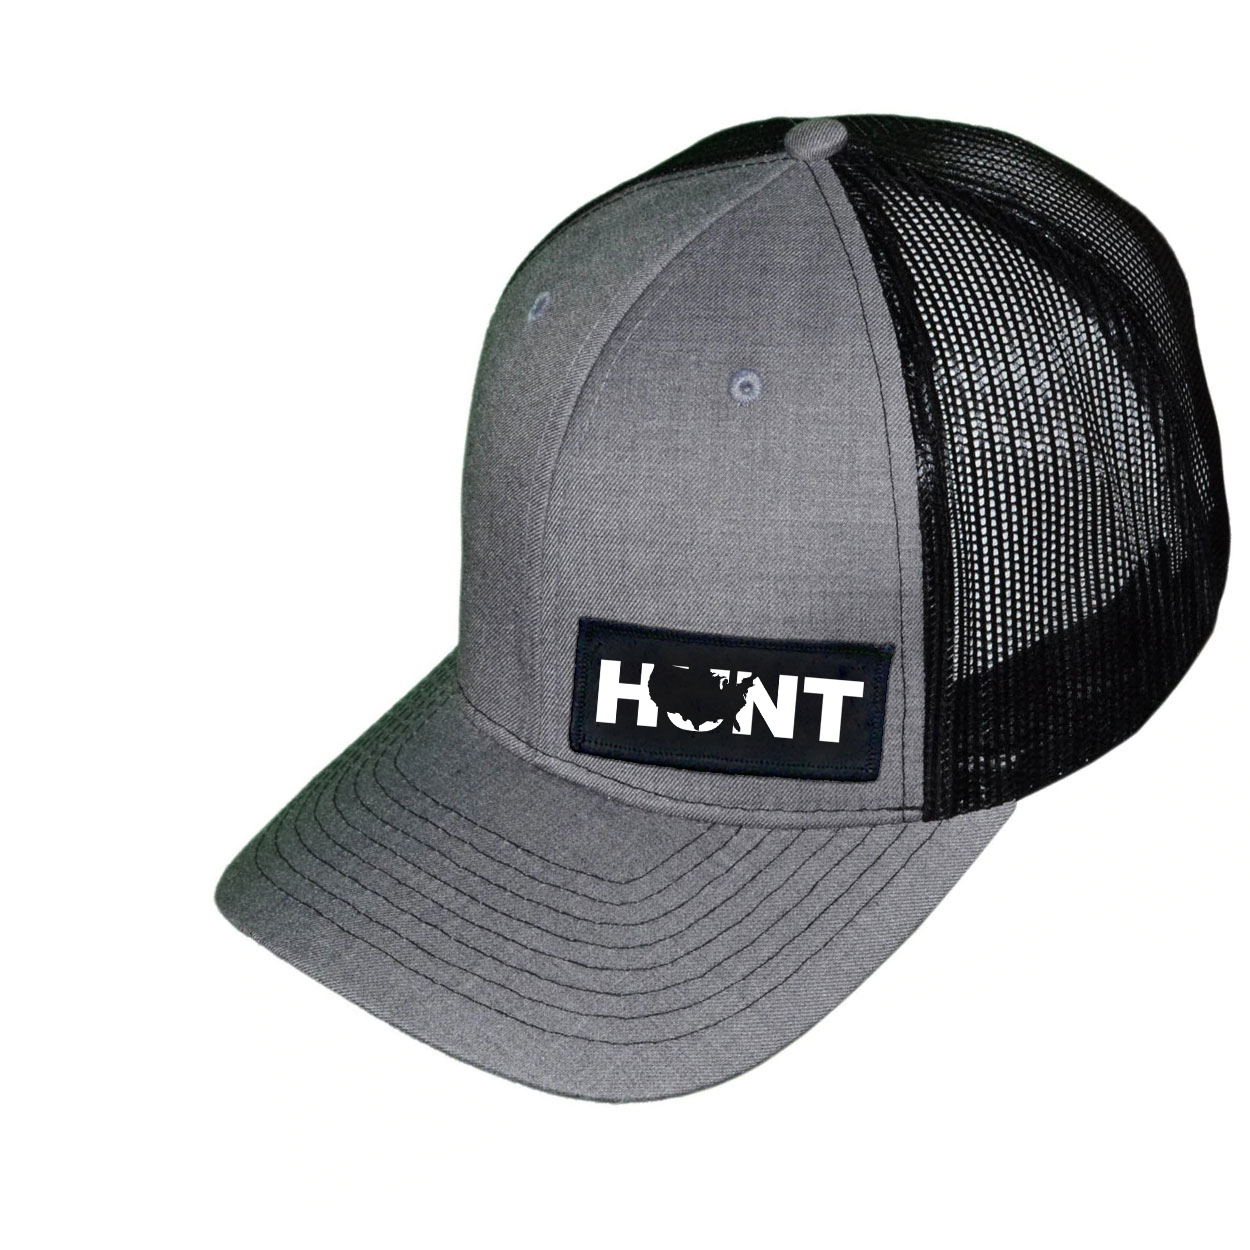 Hunt United States Night Out Woven Patch Snapback Trucker Hat Heather Gray/Black (White Logo)